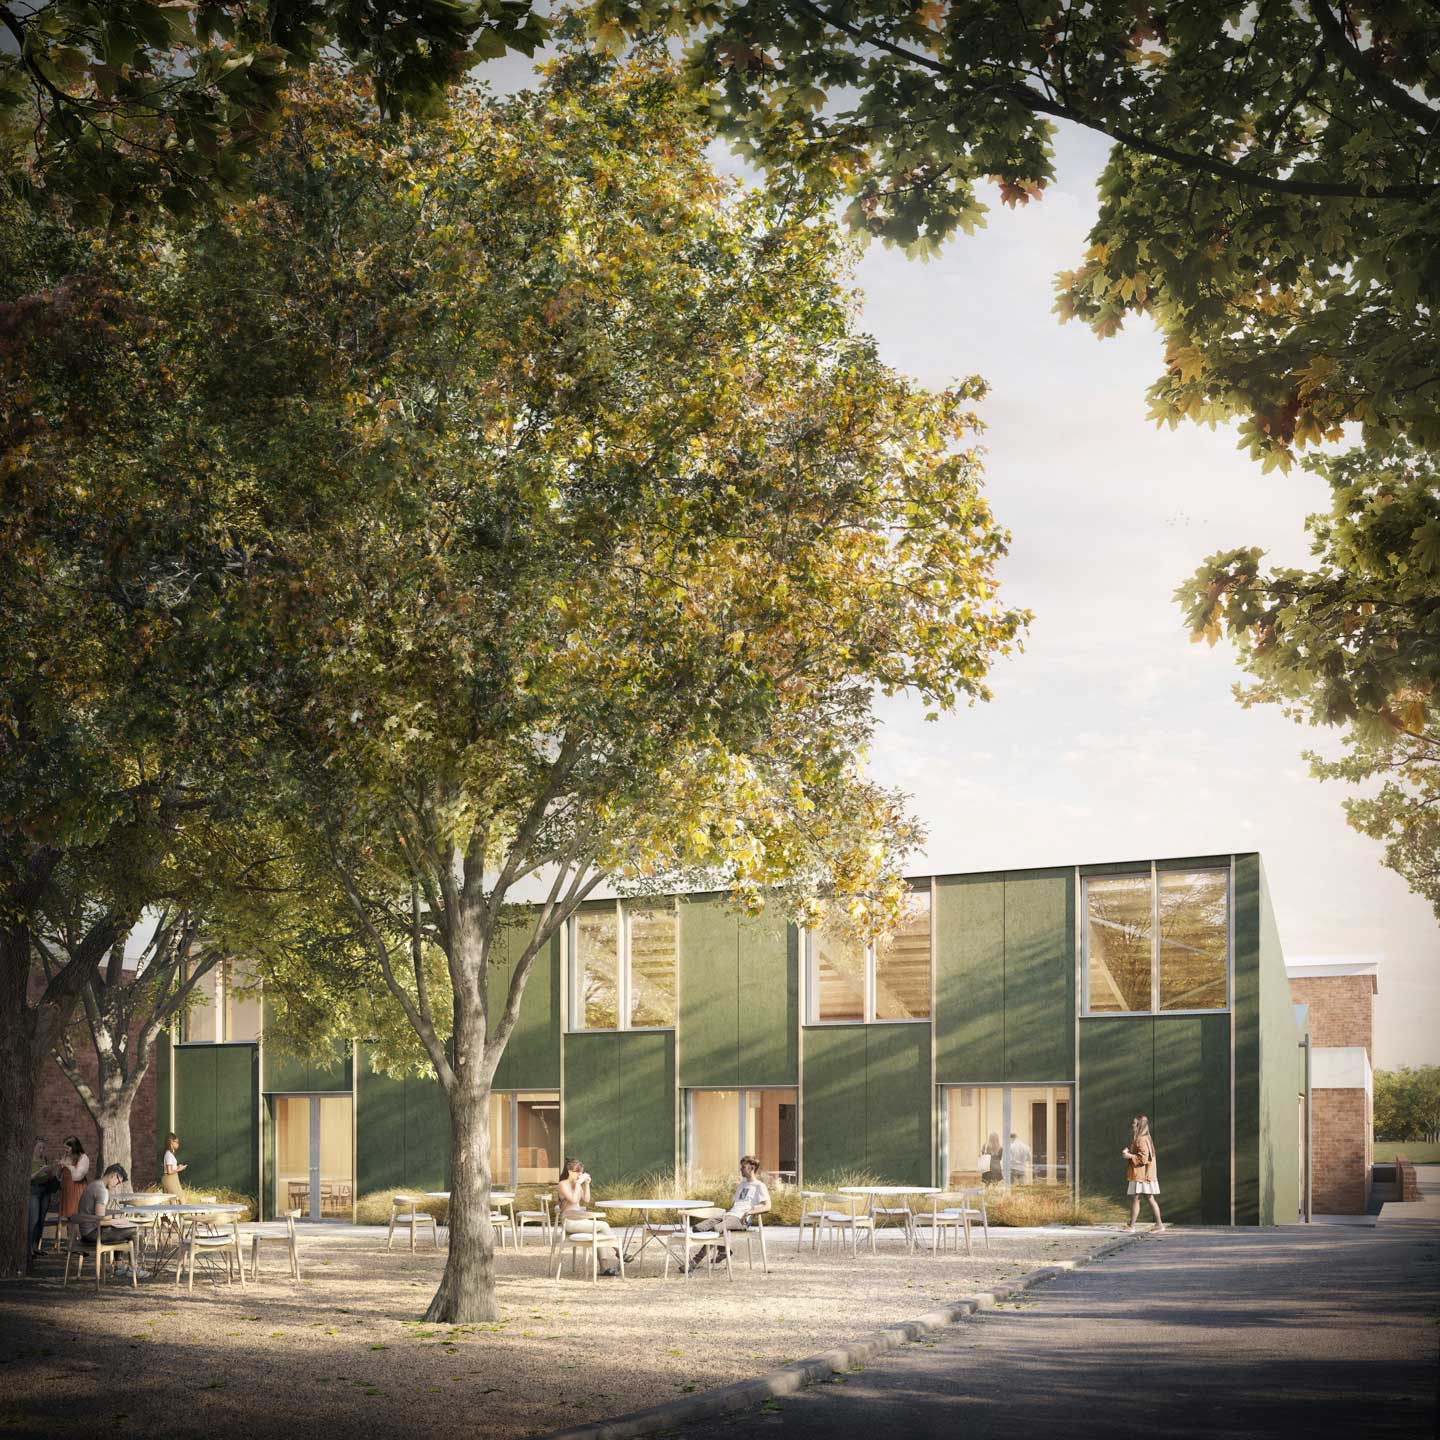 Planning granted for new school dining hall